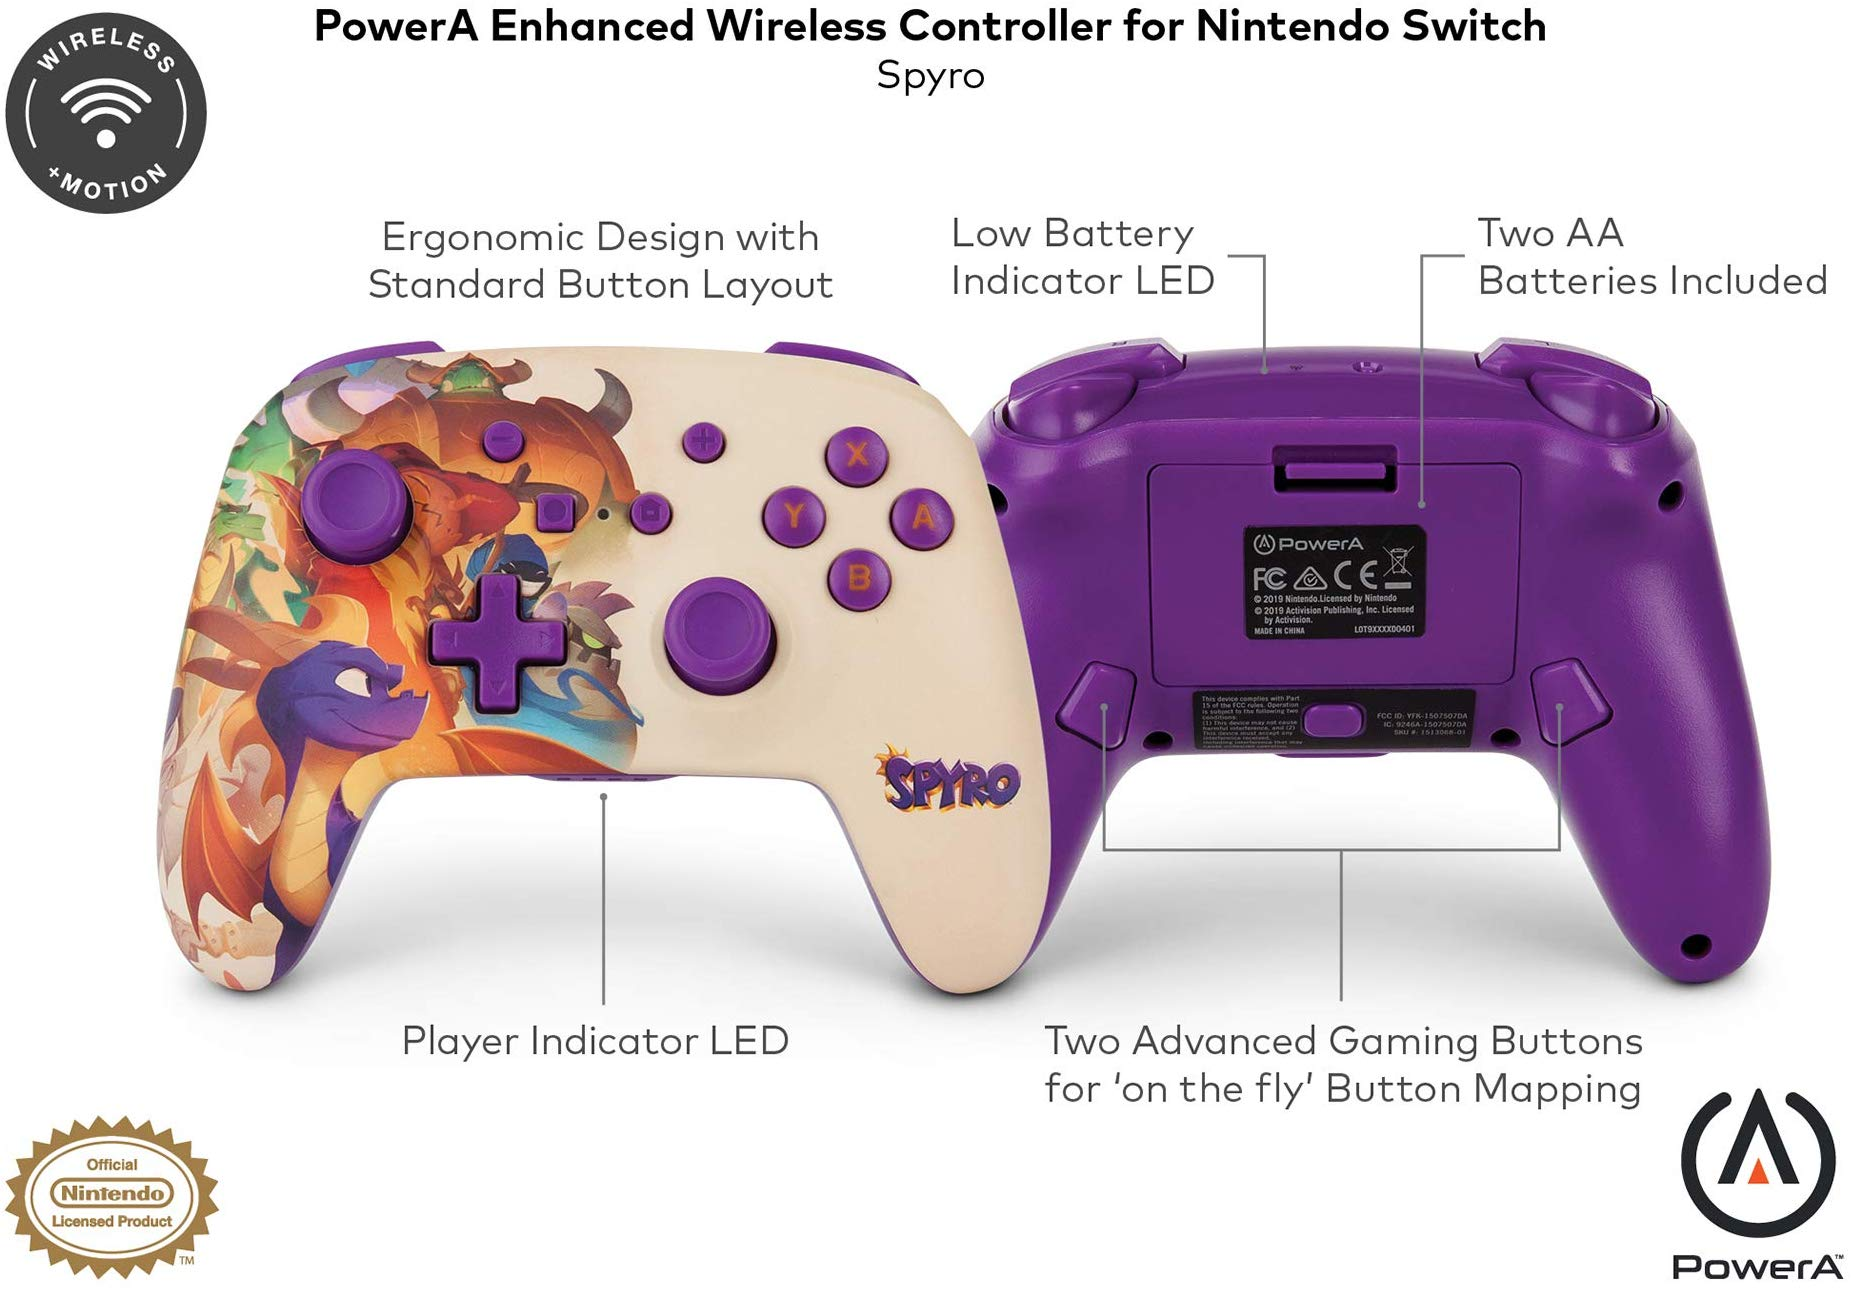 You can now buy a Spyro controller for Nintendo Switch